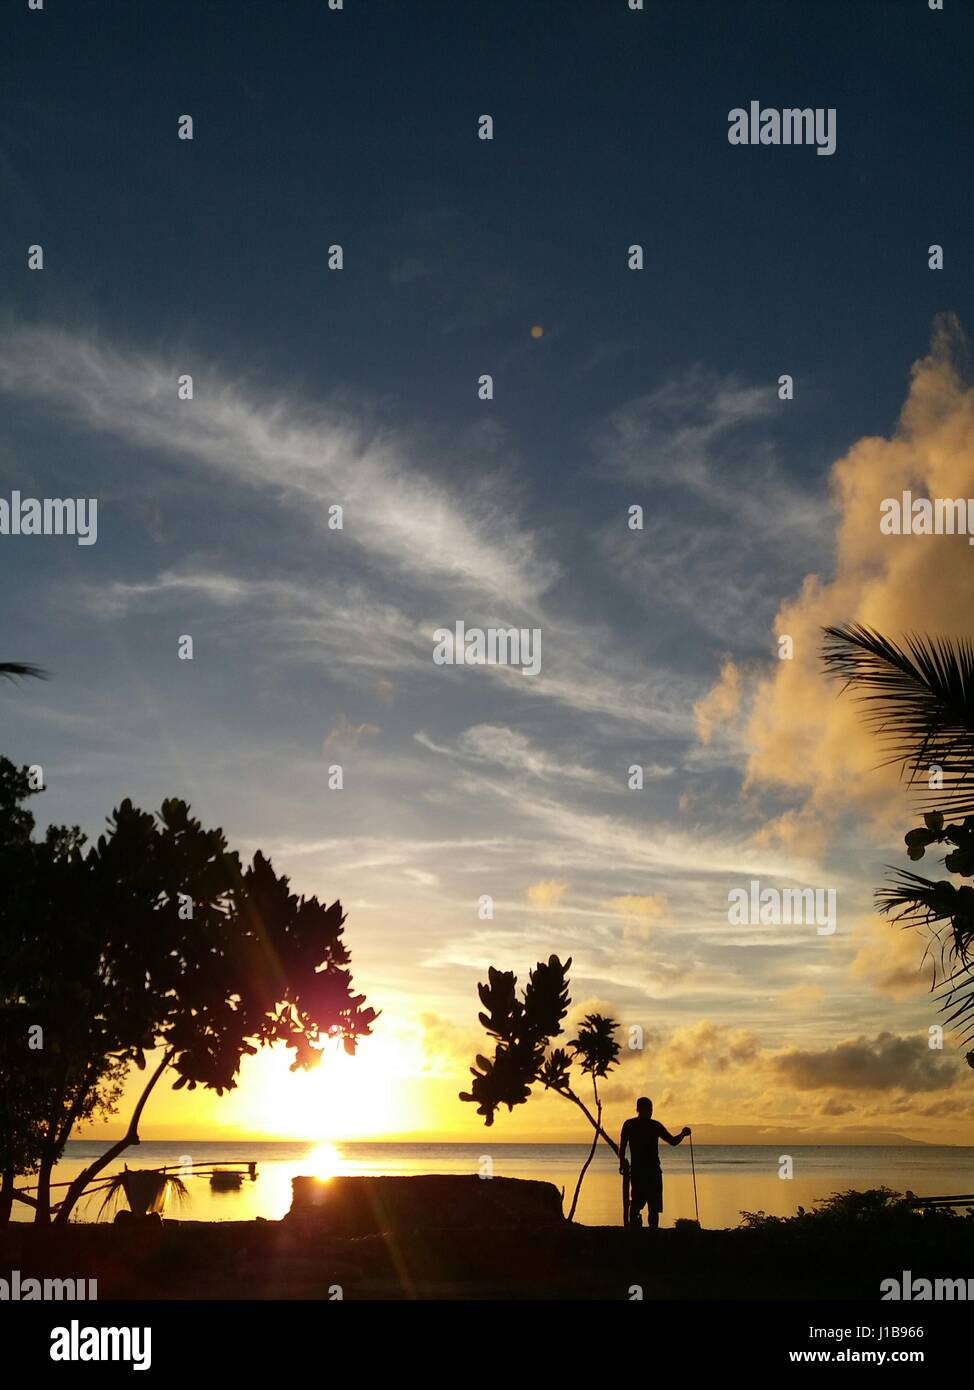 Mornings and Silhouettes - Stock Image